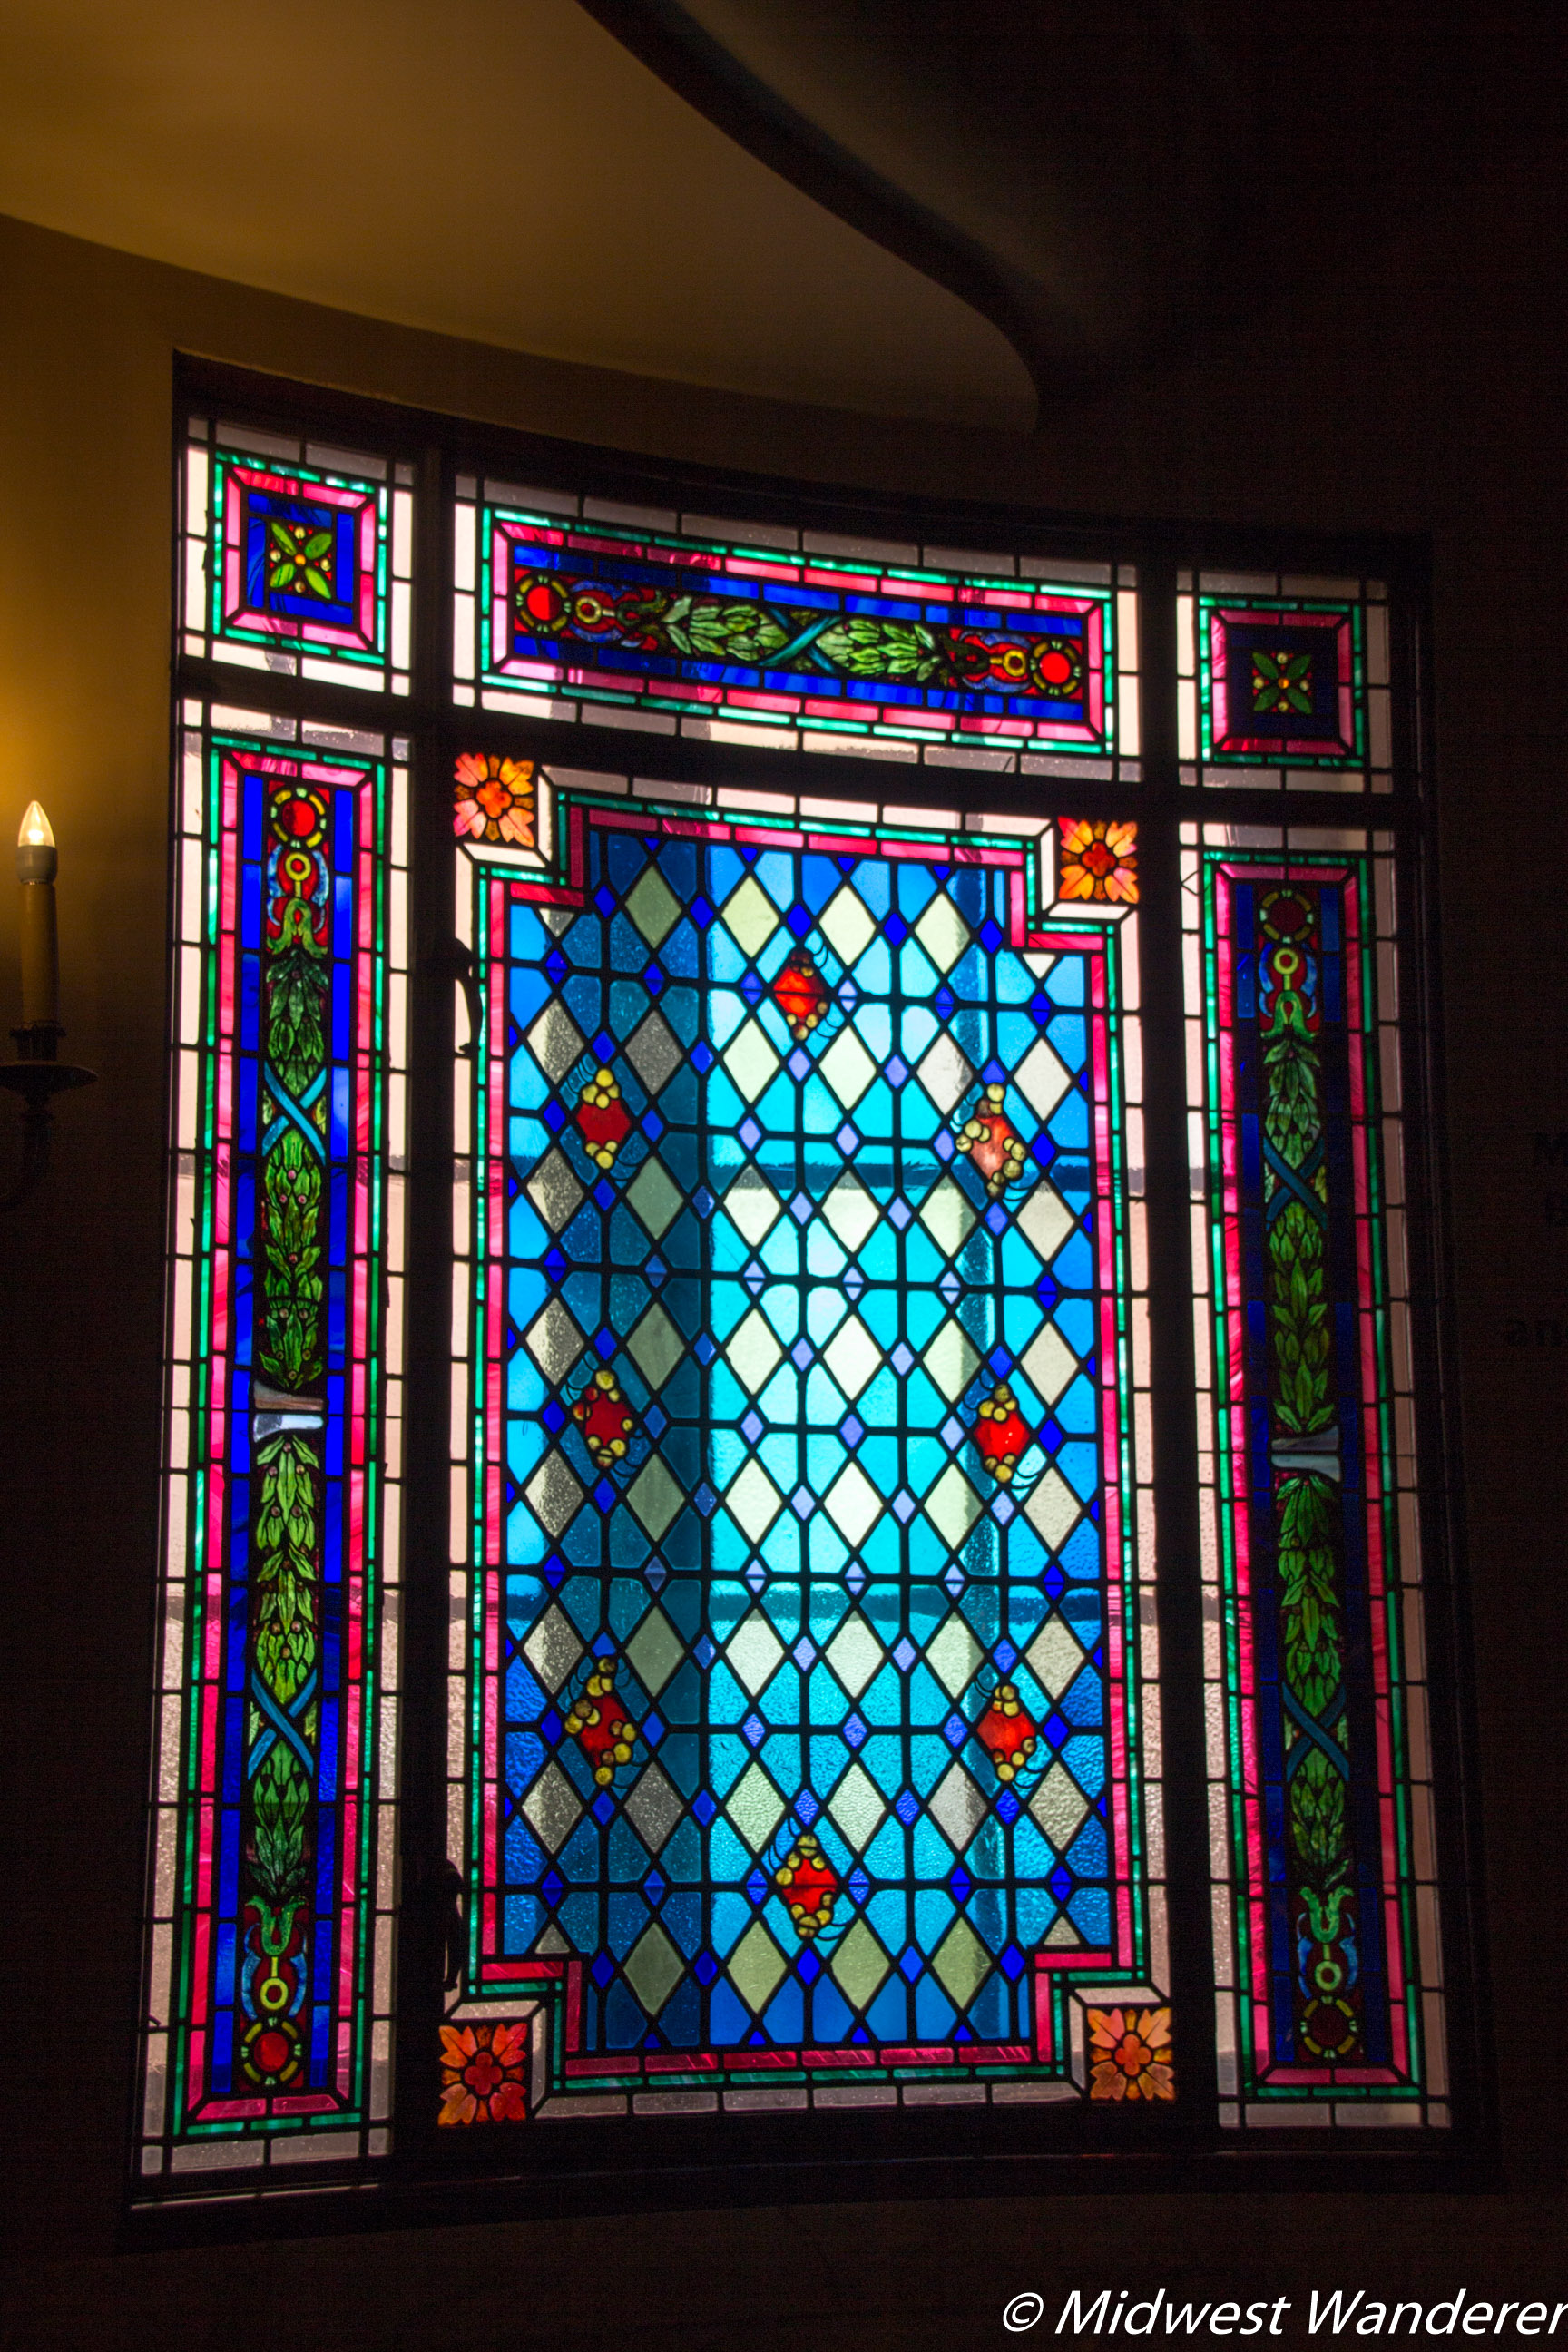 Hershey Theatre stained glass